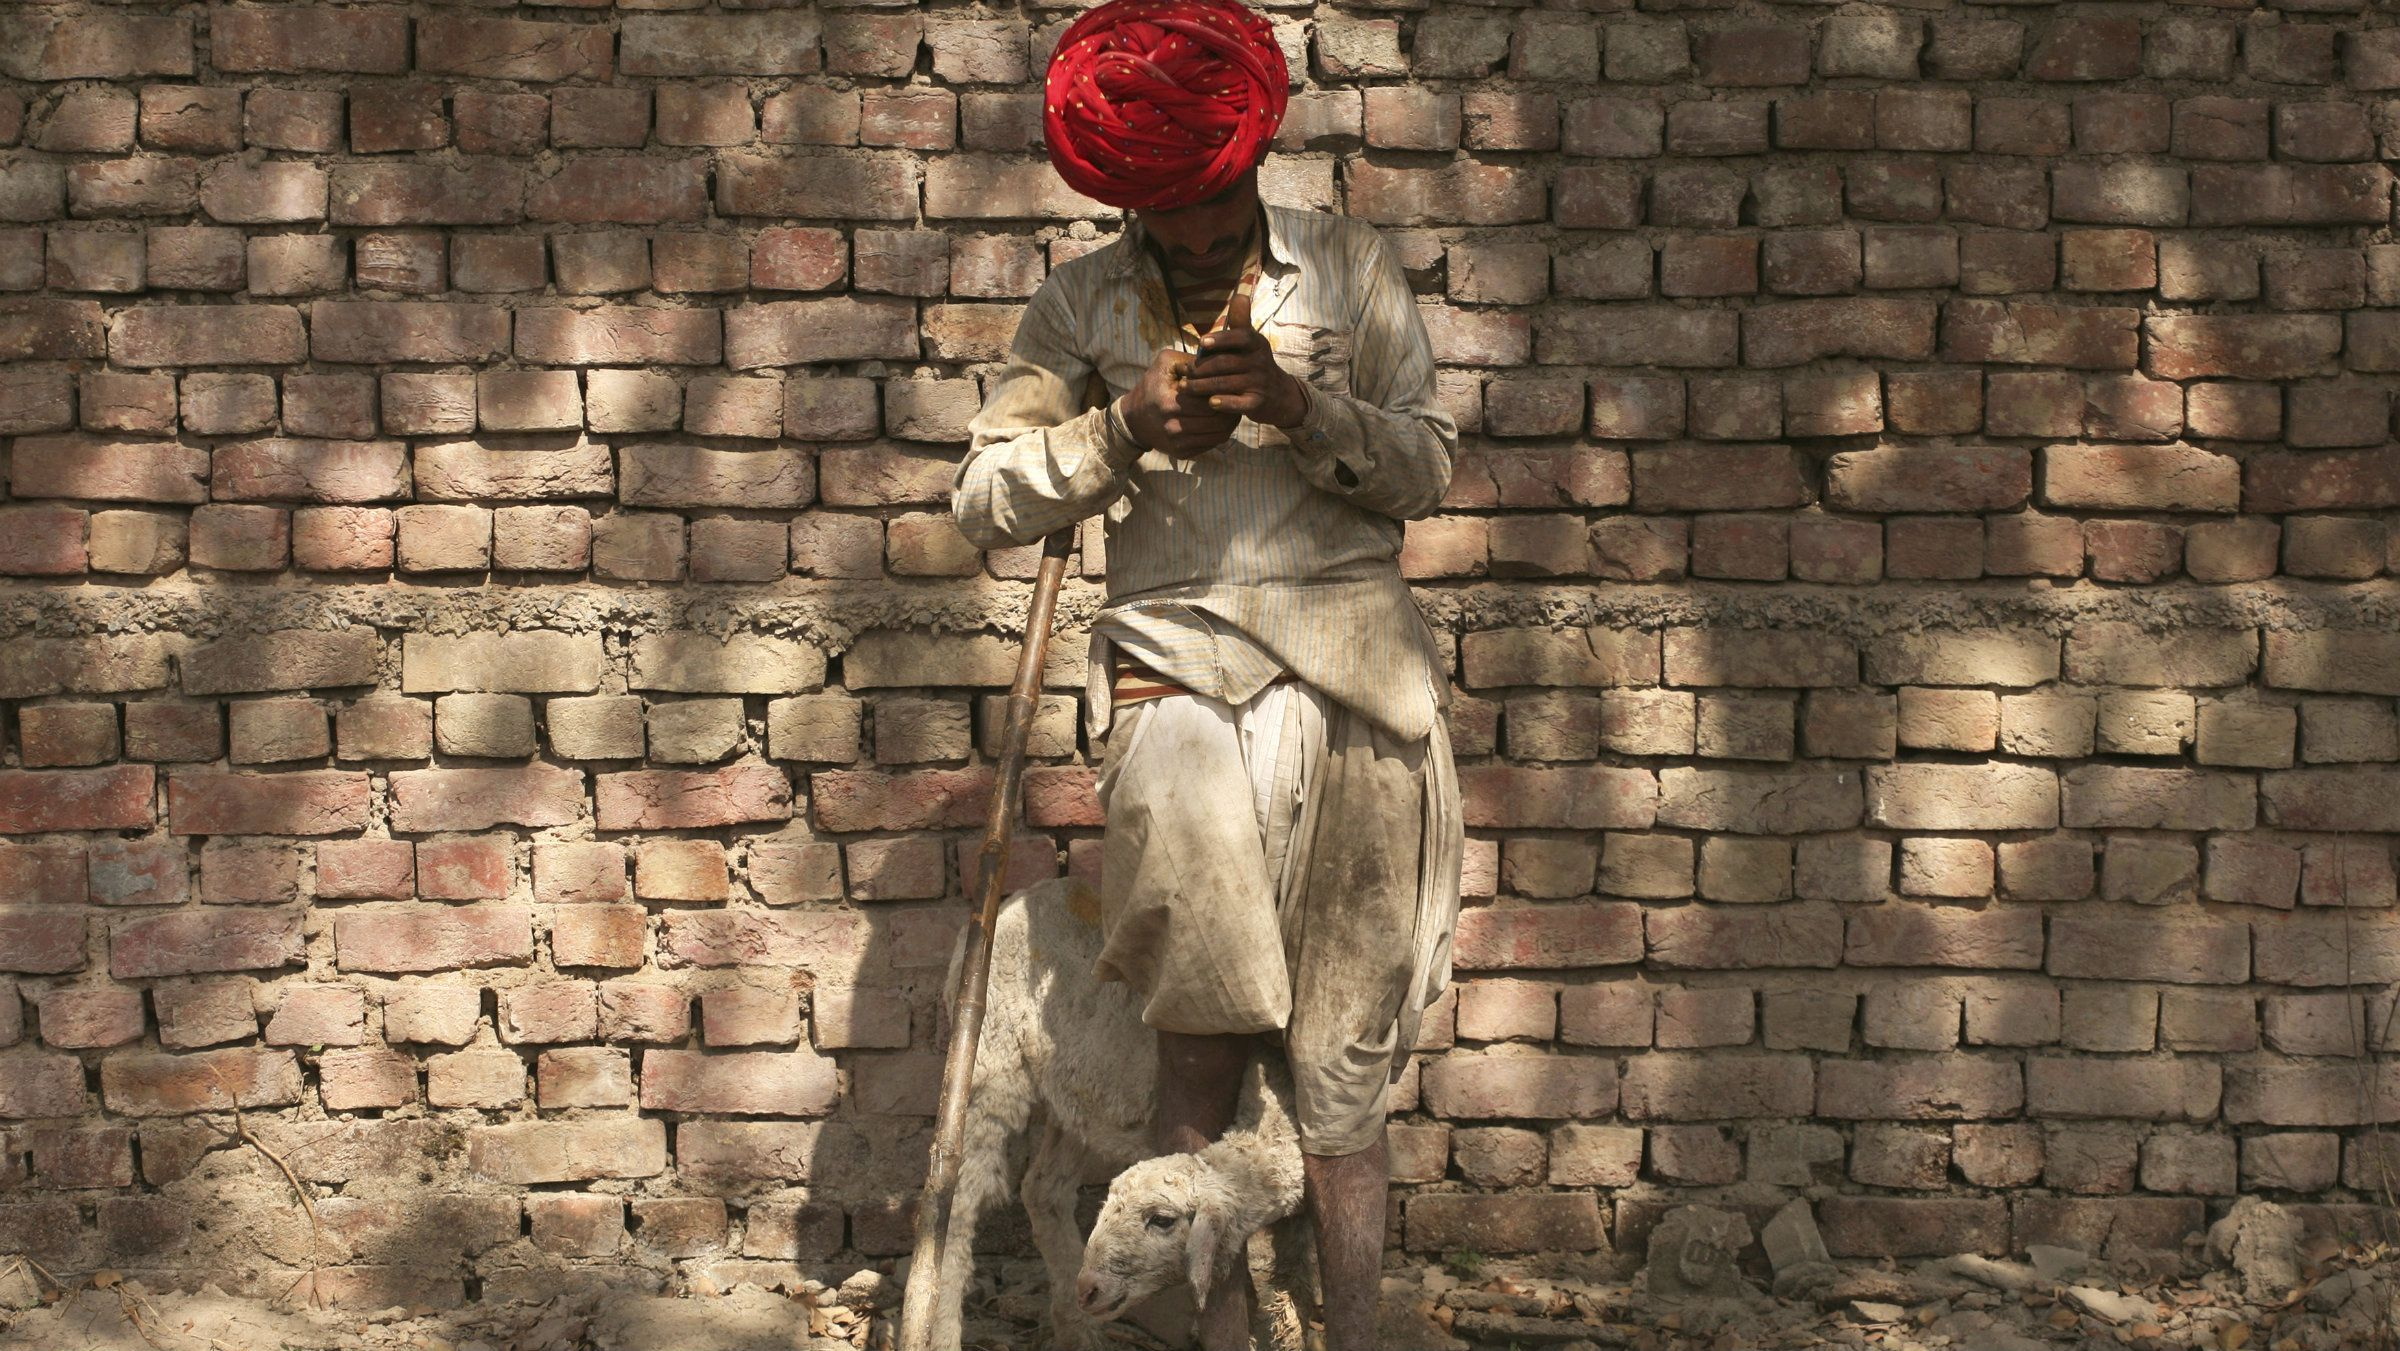 A nomadic shepherd stands with a sheep while listening to music from his mobile phone along a road in Noida on the outskirts of New Delhi